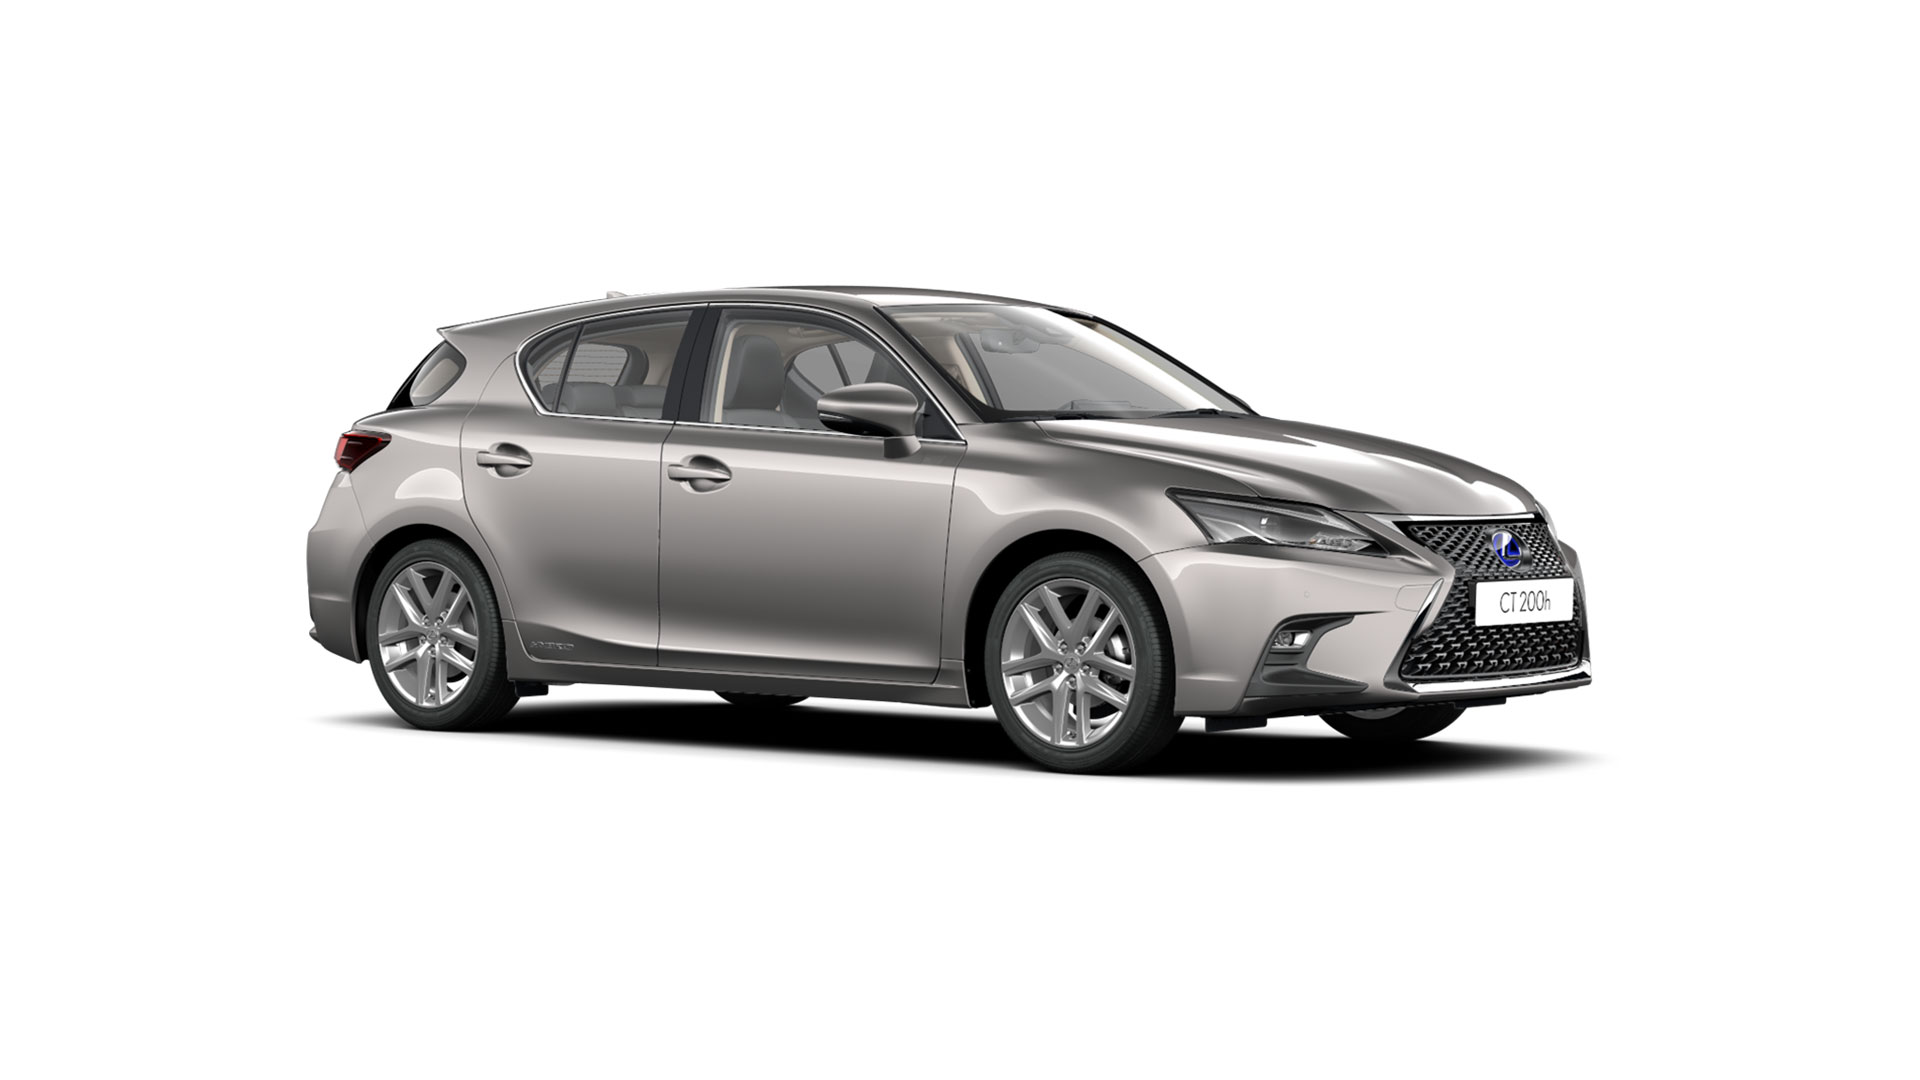 2017 lexus hybrid for business meet the ct ccis new